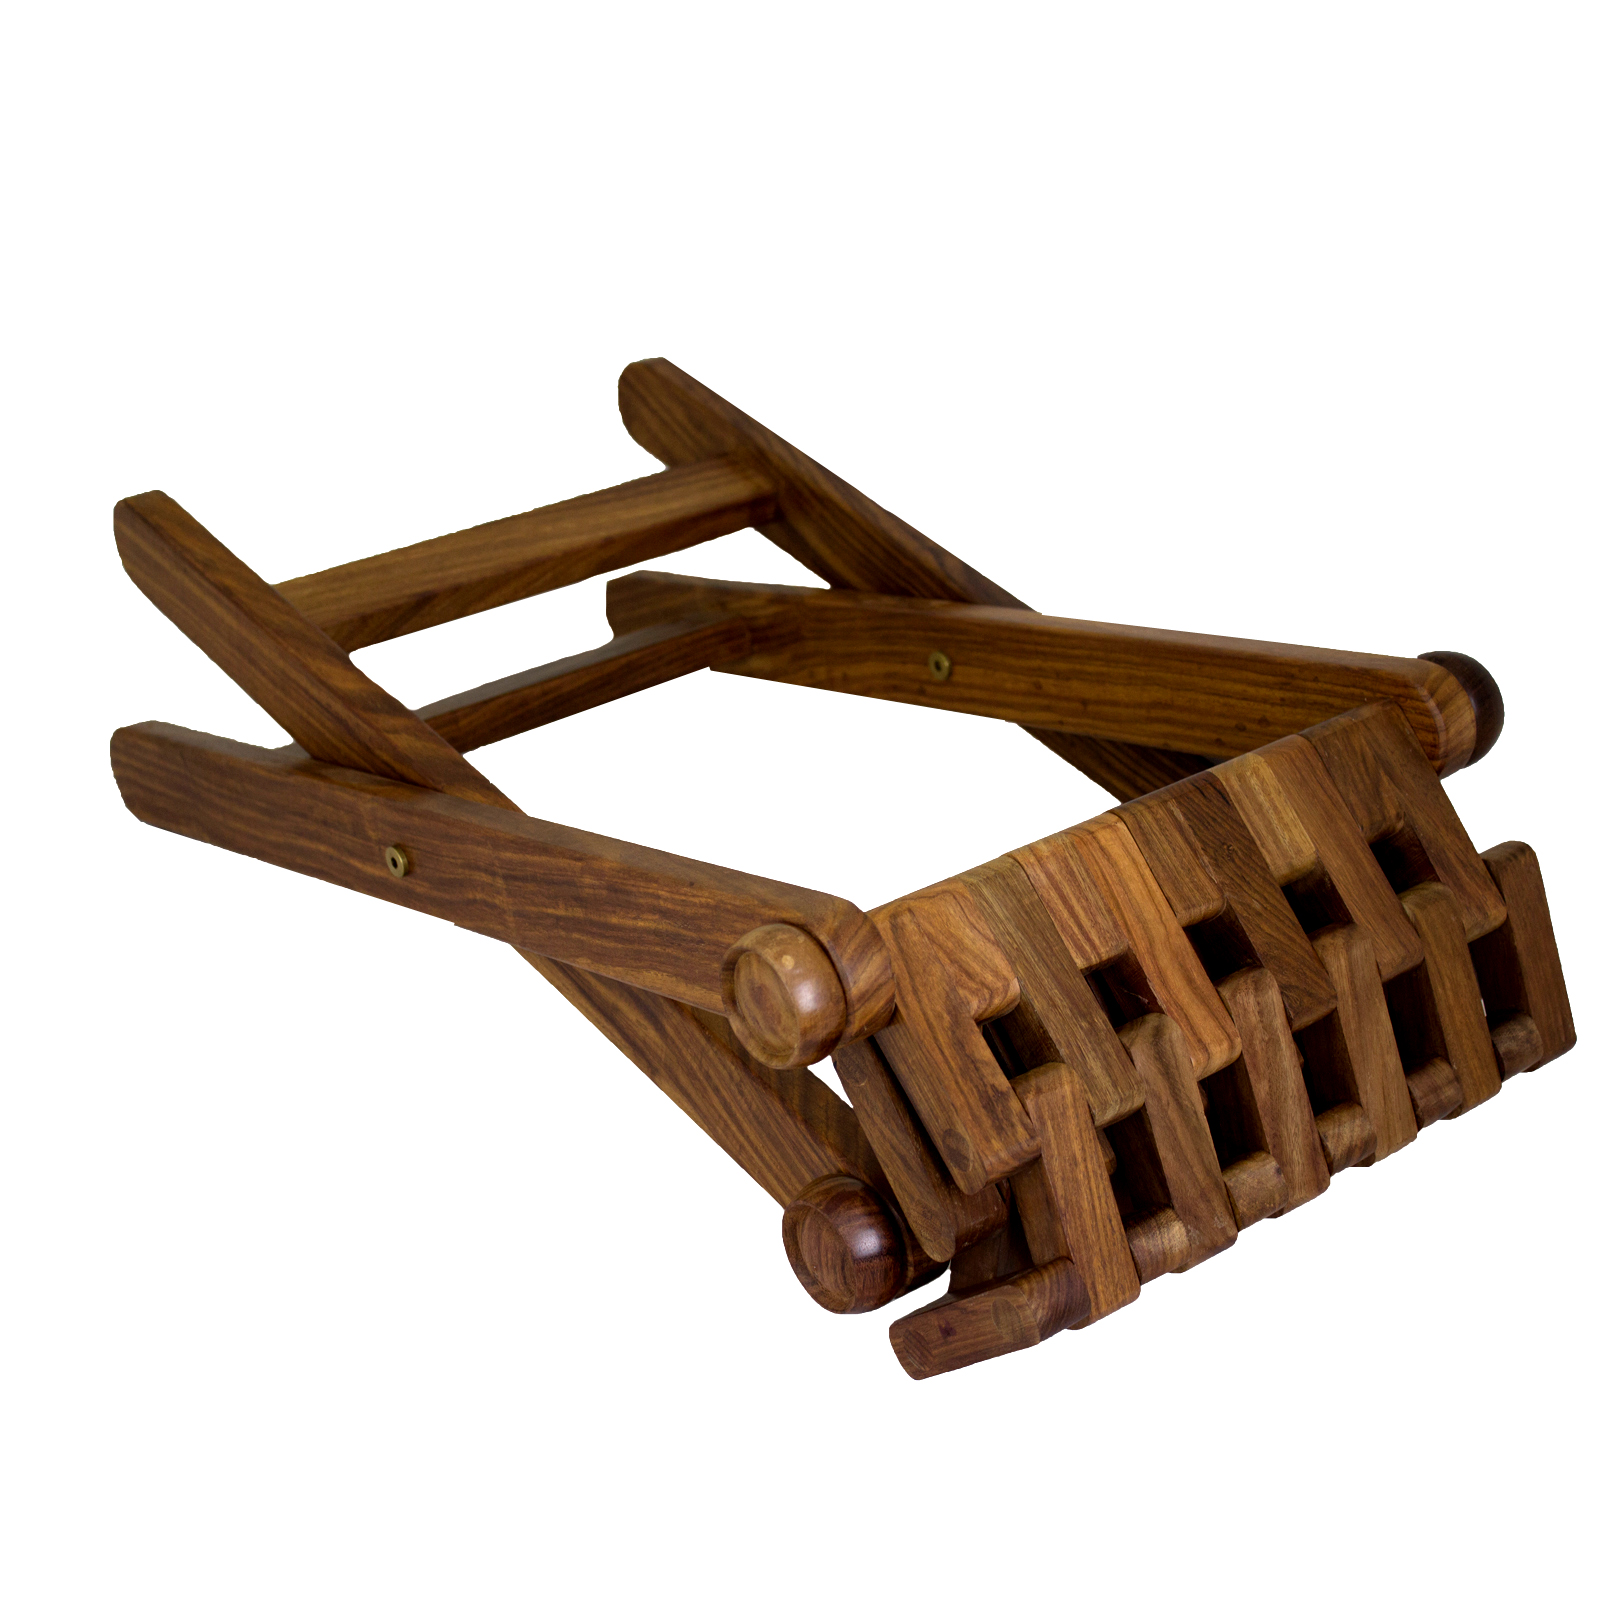 Superb img of Folding Foot Stool Rest Urban Home Hand Carved Wooden Vintage Indian  with #3B1D08 color and 1600x1600 pixels